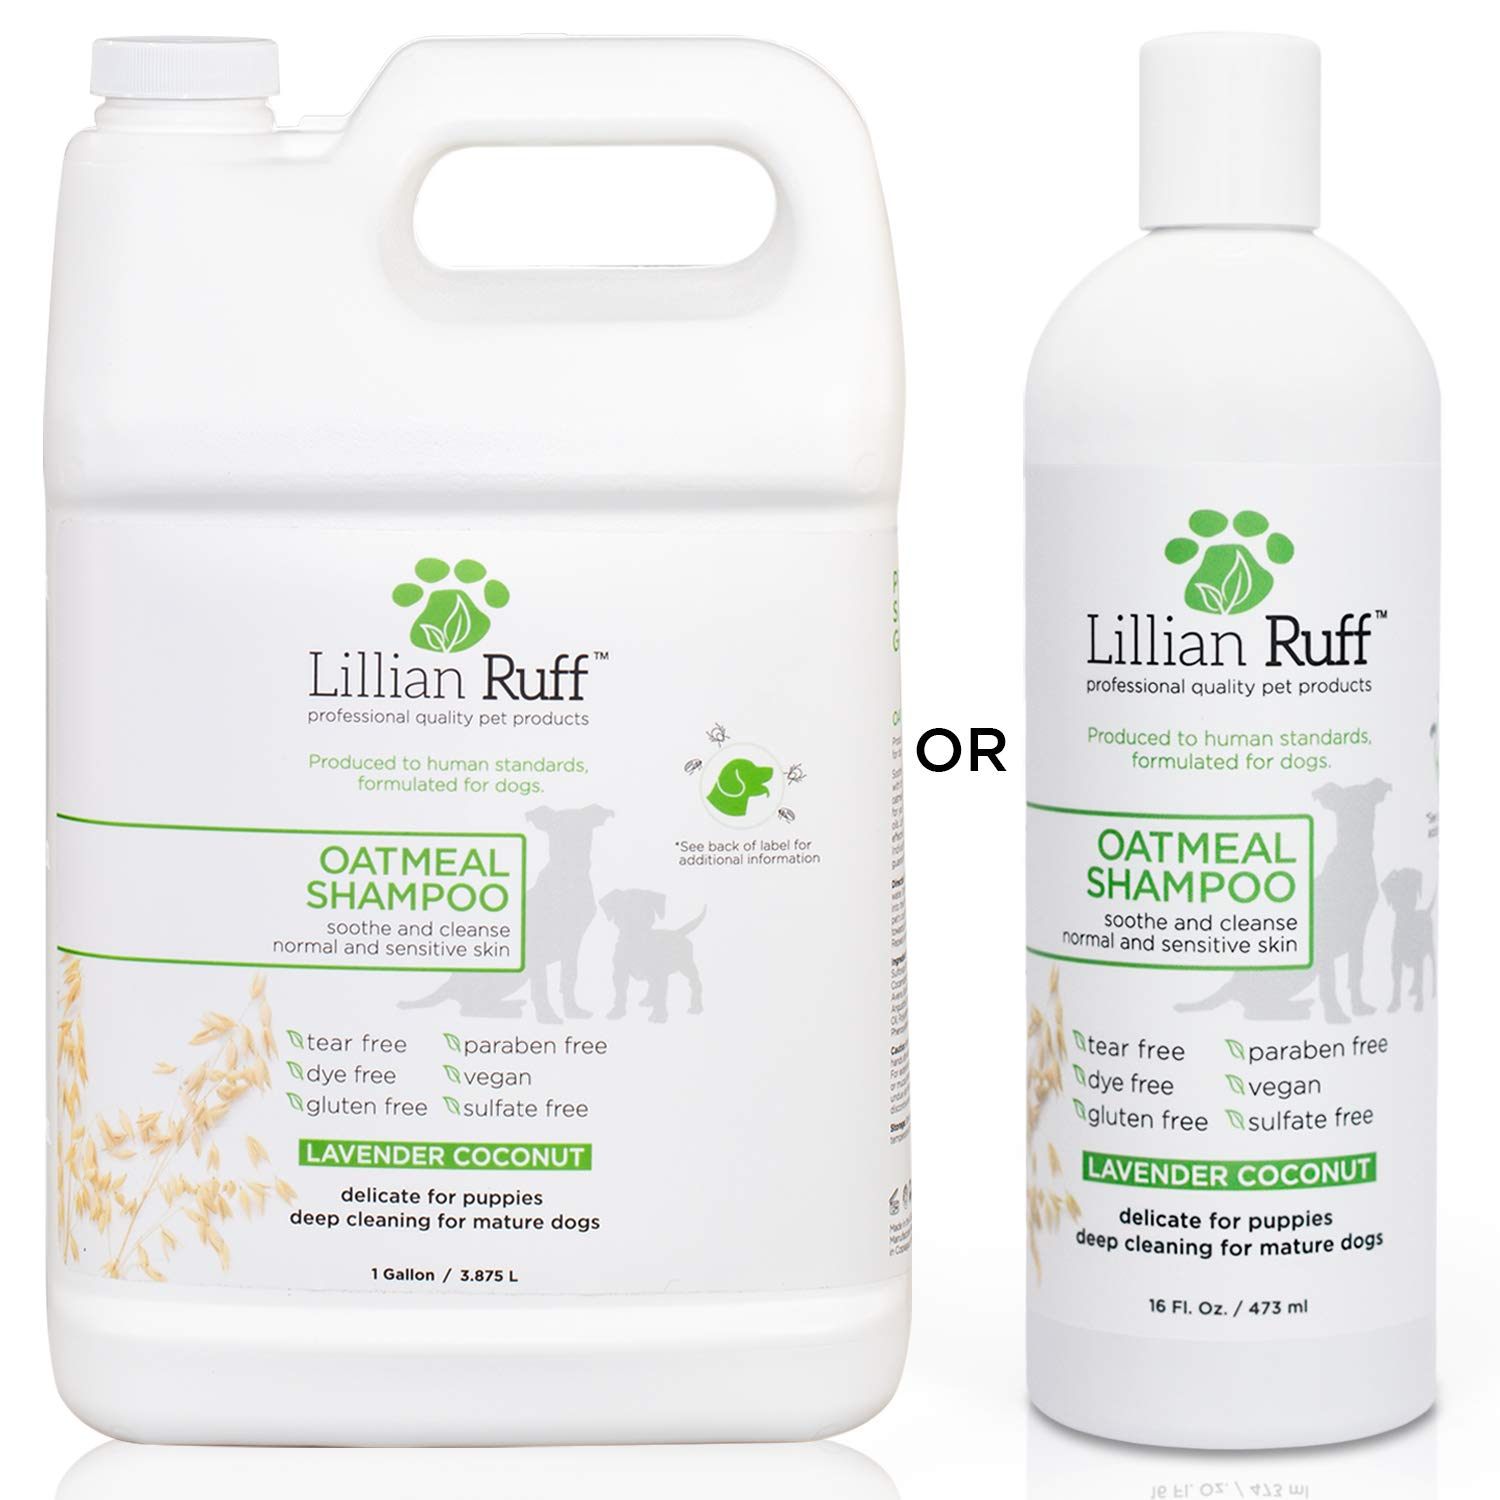 Lillian Ruff Oatmeal Dog Shampoo - Lavender Coconut Scent with Aloe - Deodorize and Soothe Dry Itchy Skin - Gentle Cleanser for Normal to Sensitive Skin (1 Gallon)